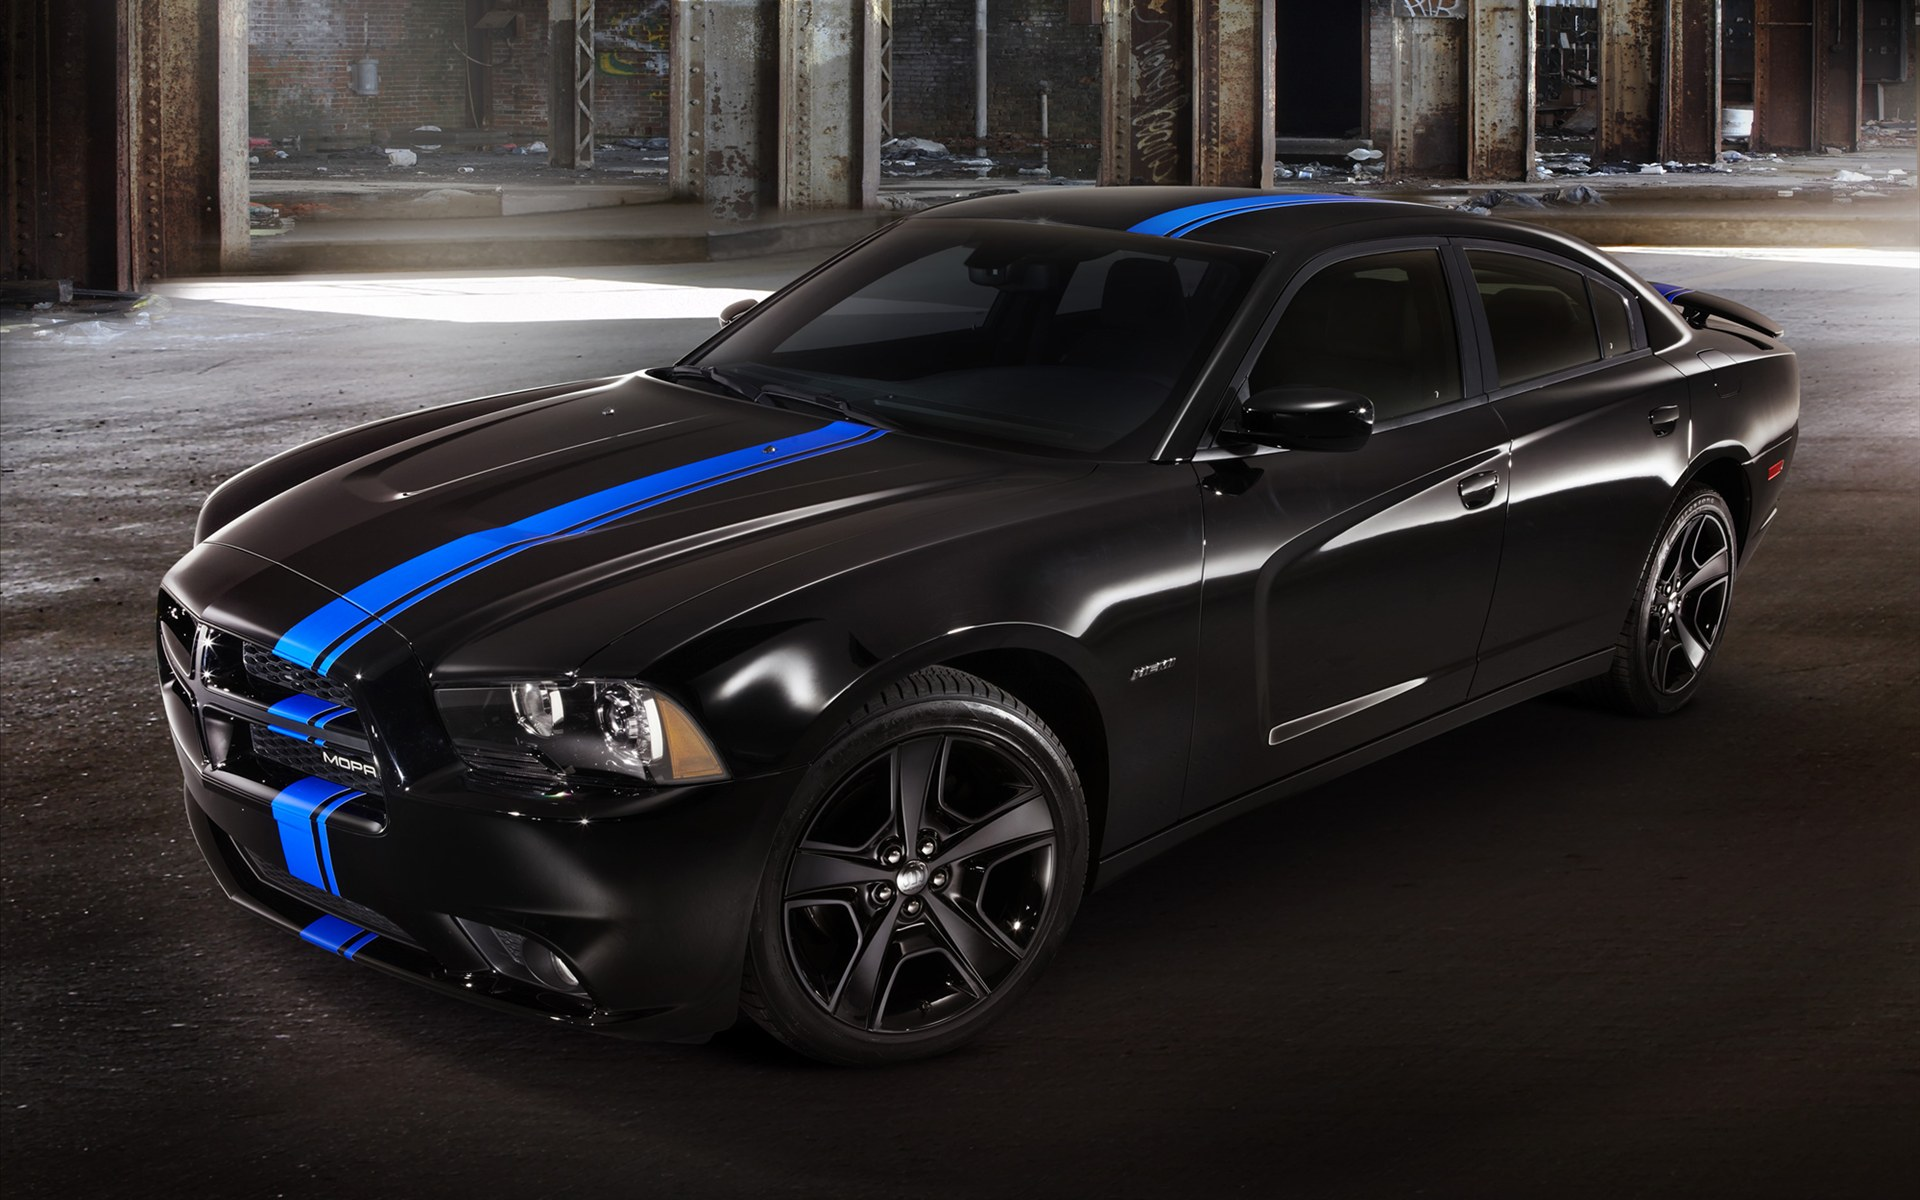 2011 dodge charger mopar wallpaper hd car wallpapers id 1985. Black Bedroom Furniture Sets. Home Design Ideas